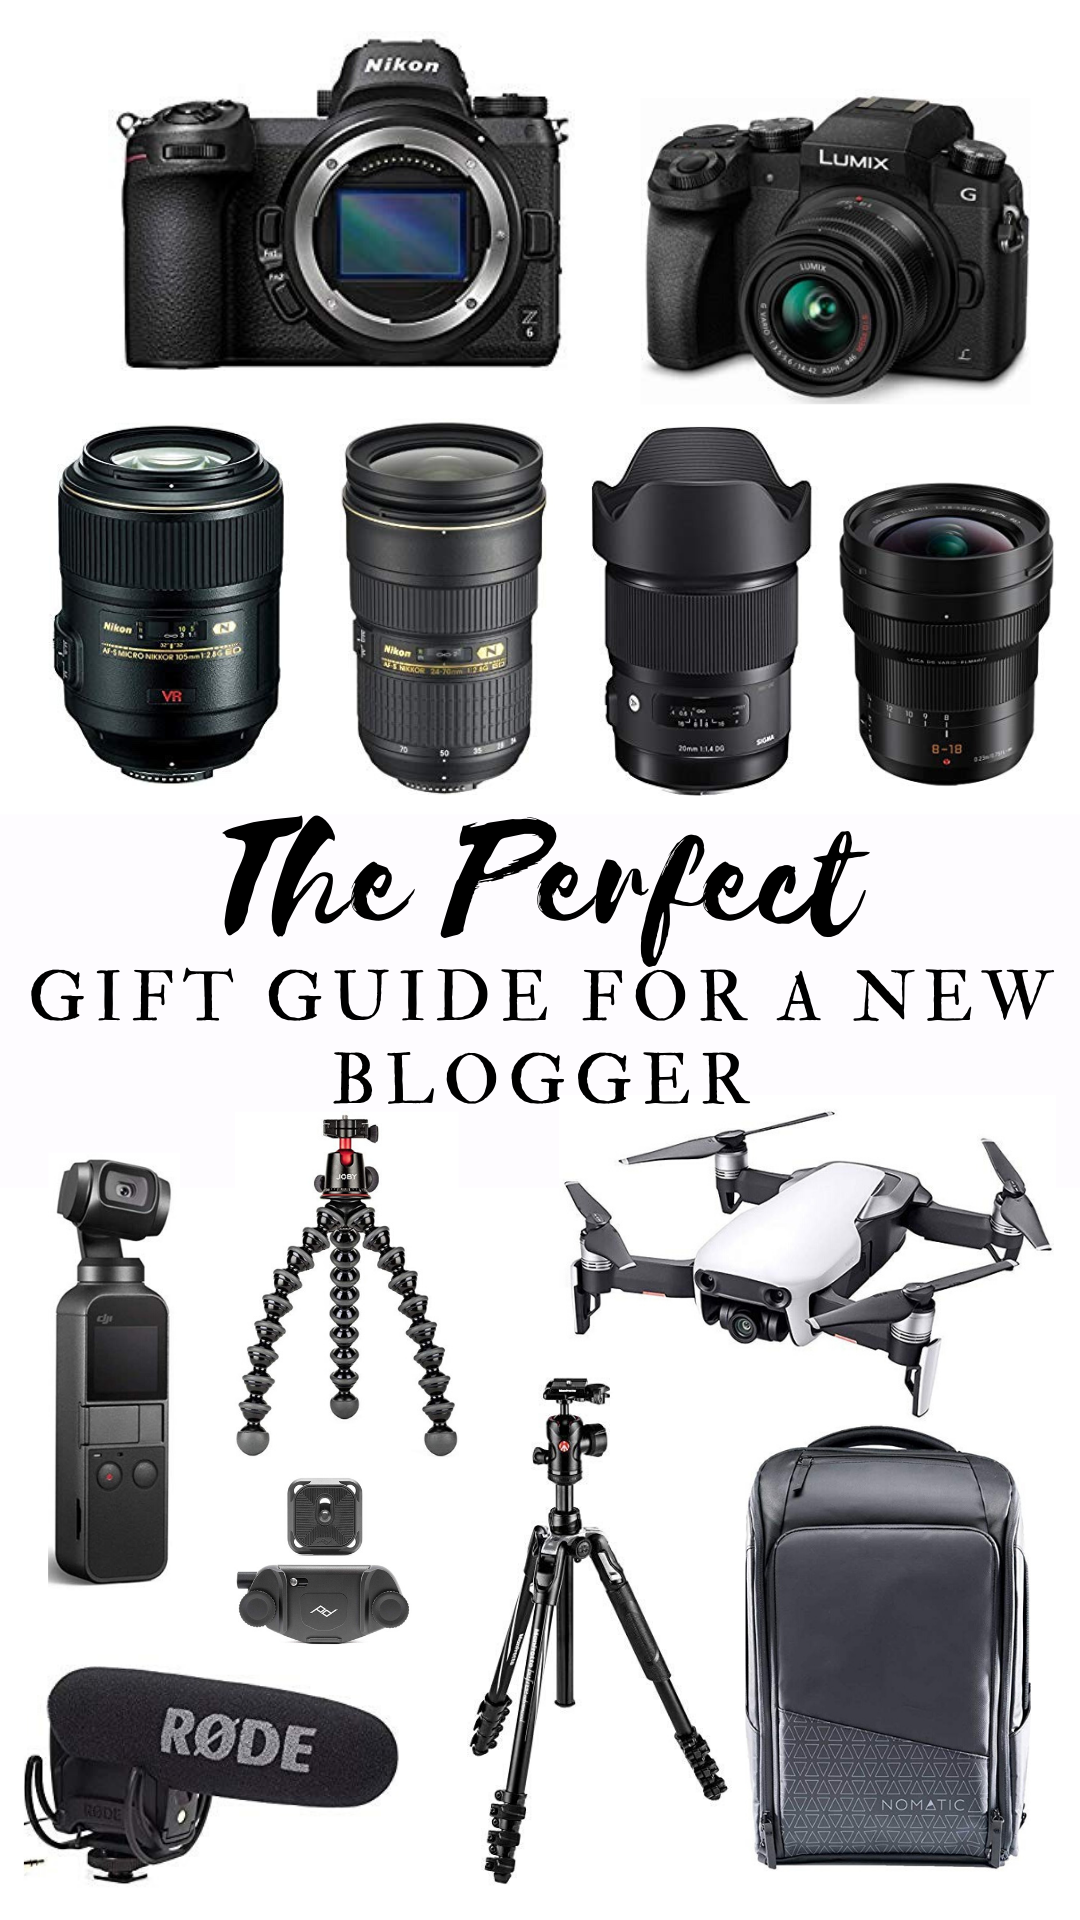 Gift Guide for a New Blogger